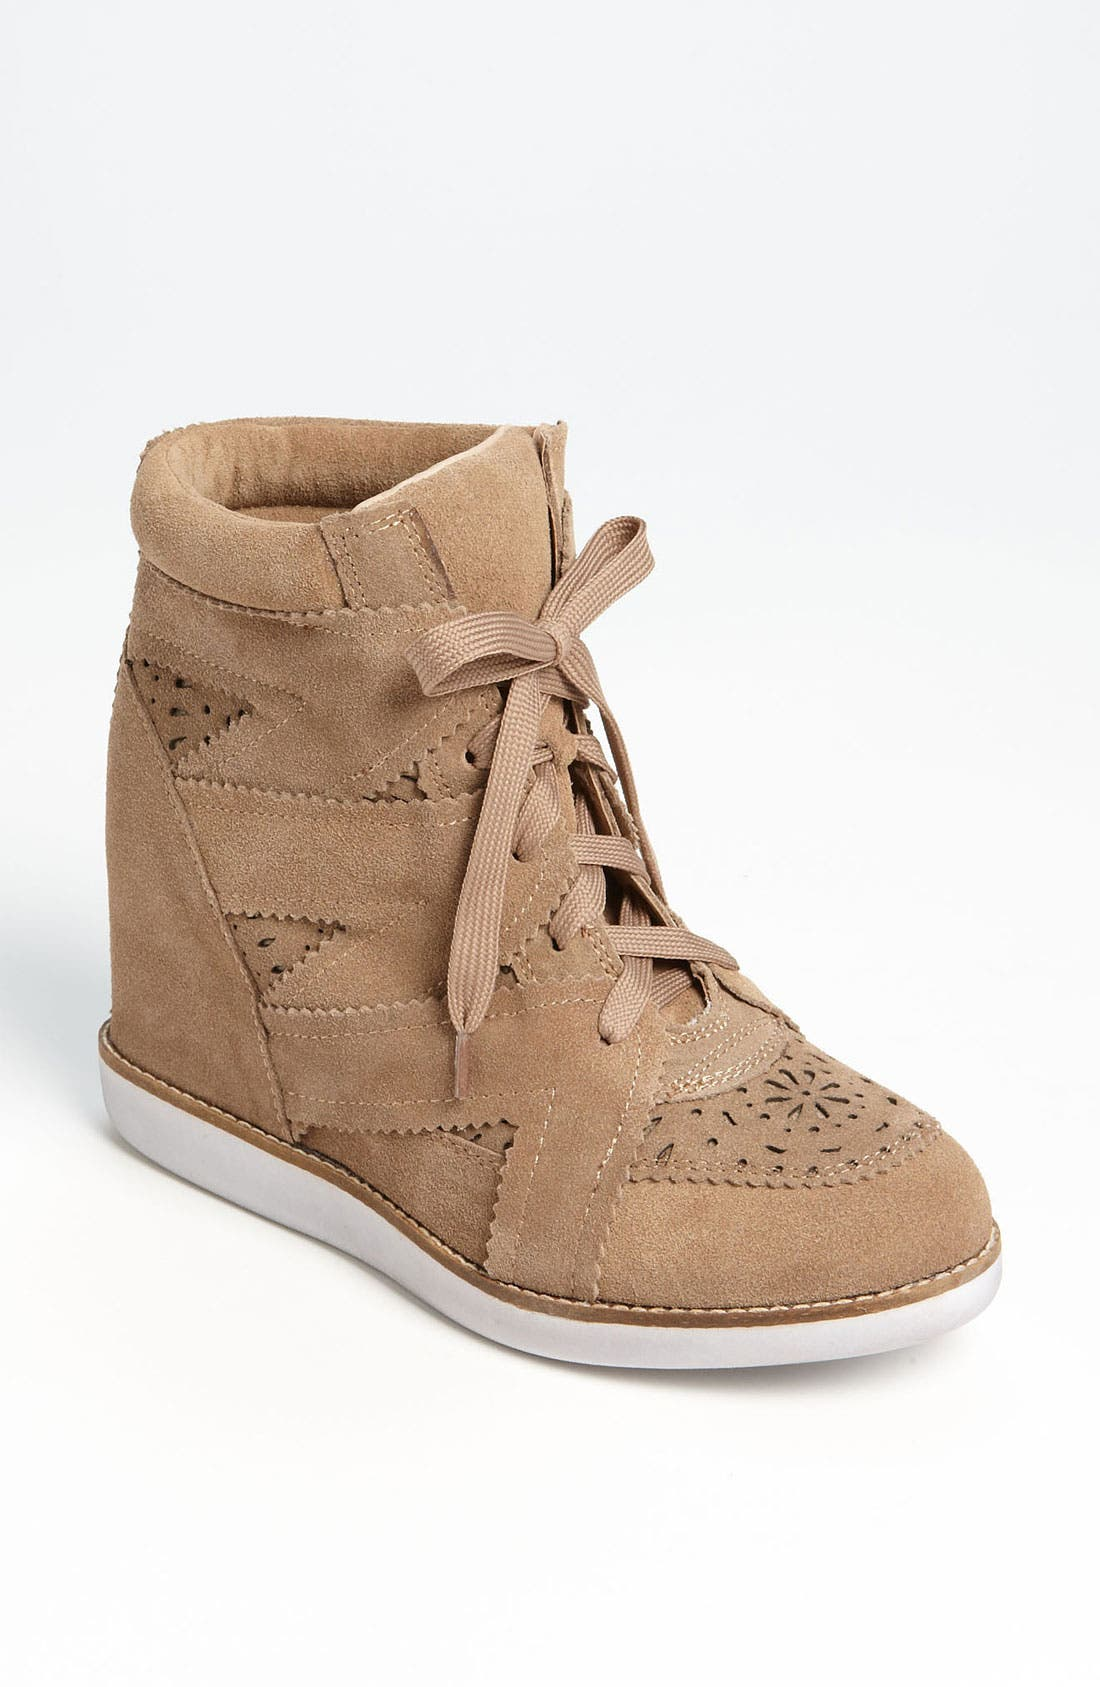 Main Image - Jeffrey Campbell 'Venice-Hi' Wedge Sneaker